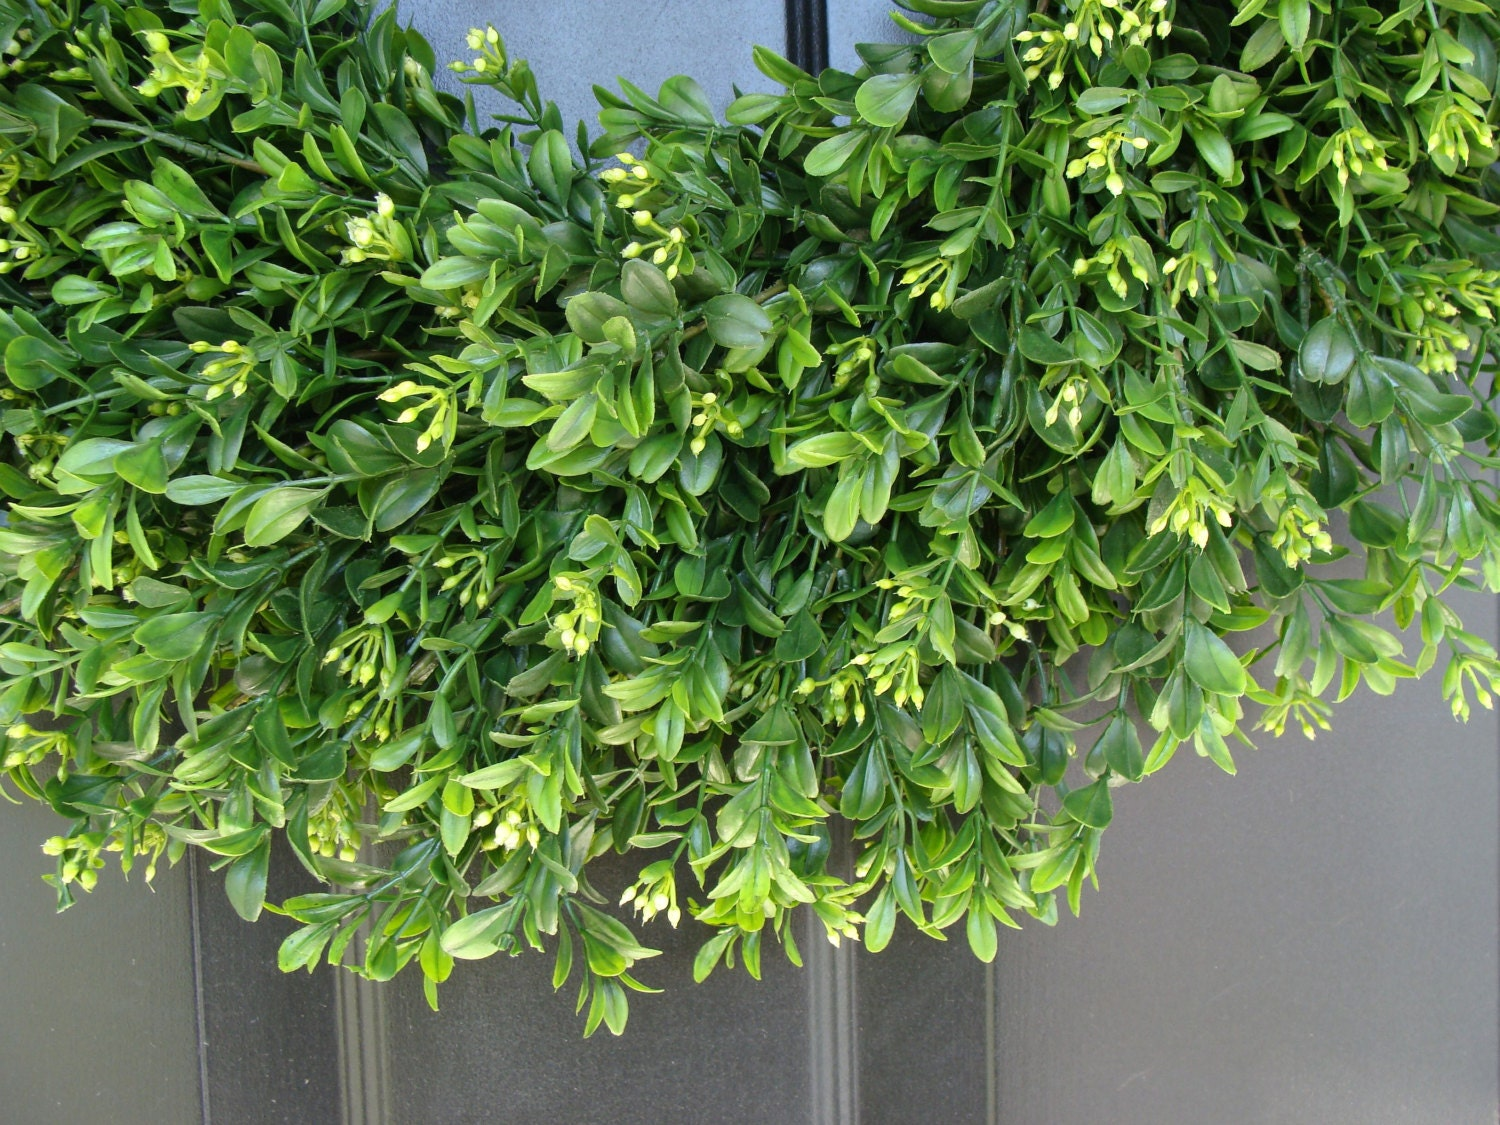 Artificial Boxwood Wreath For Sale - Summer wreath sale faux thin artificial boxwood wreath storm door wreaths front door outdoor wreath front door decor sizes 14 24 inch a